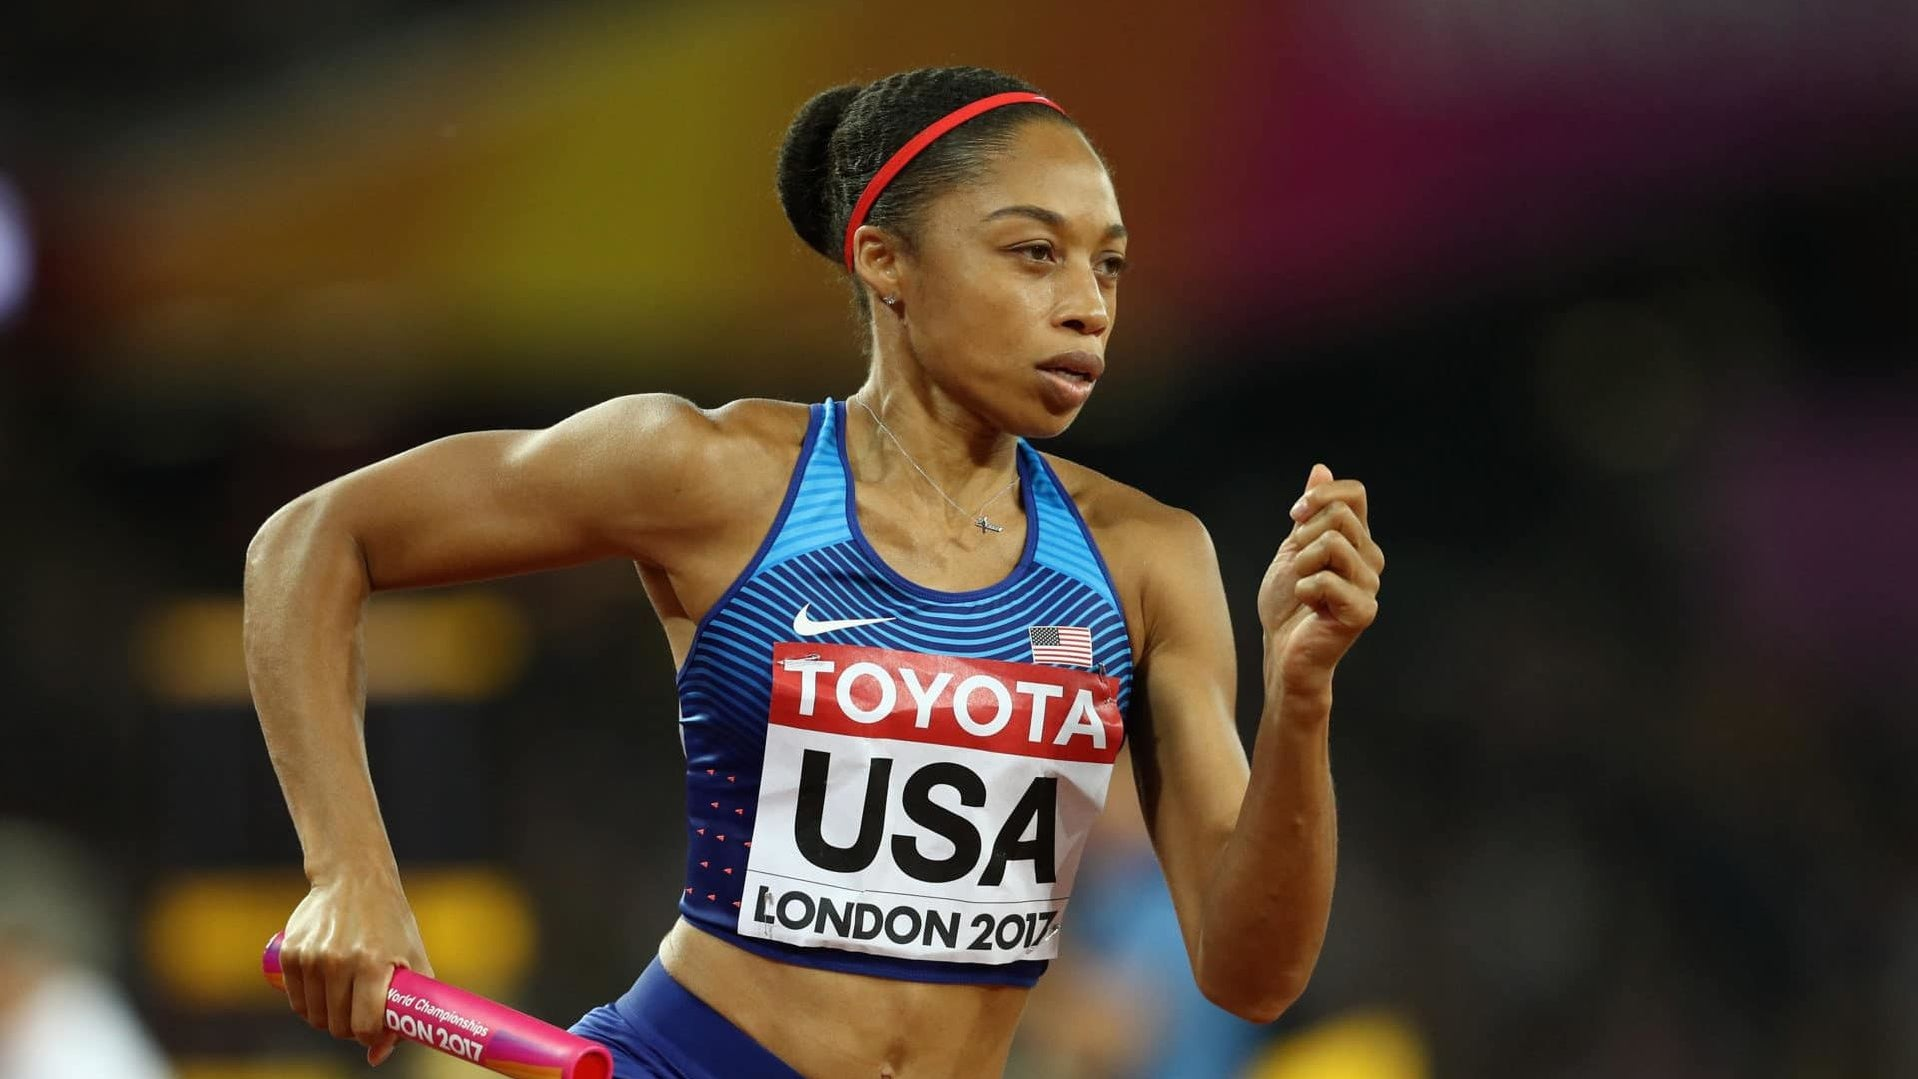 Nike Suggested Six-Time Olympic Gold Medalist Allyson Felix Was Worth 70 Percent Less After Getting Pregnant